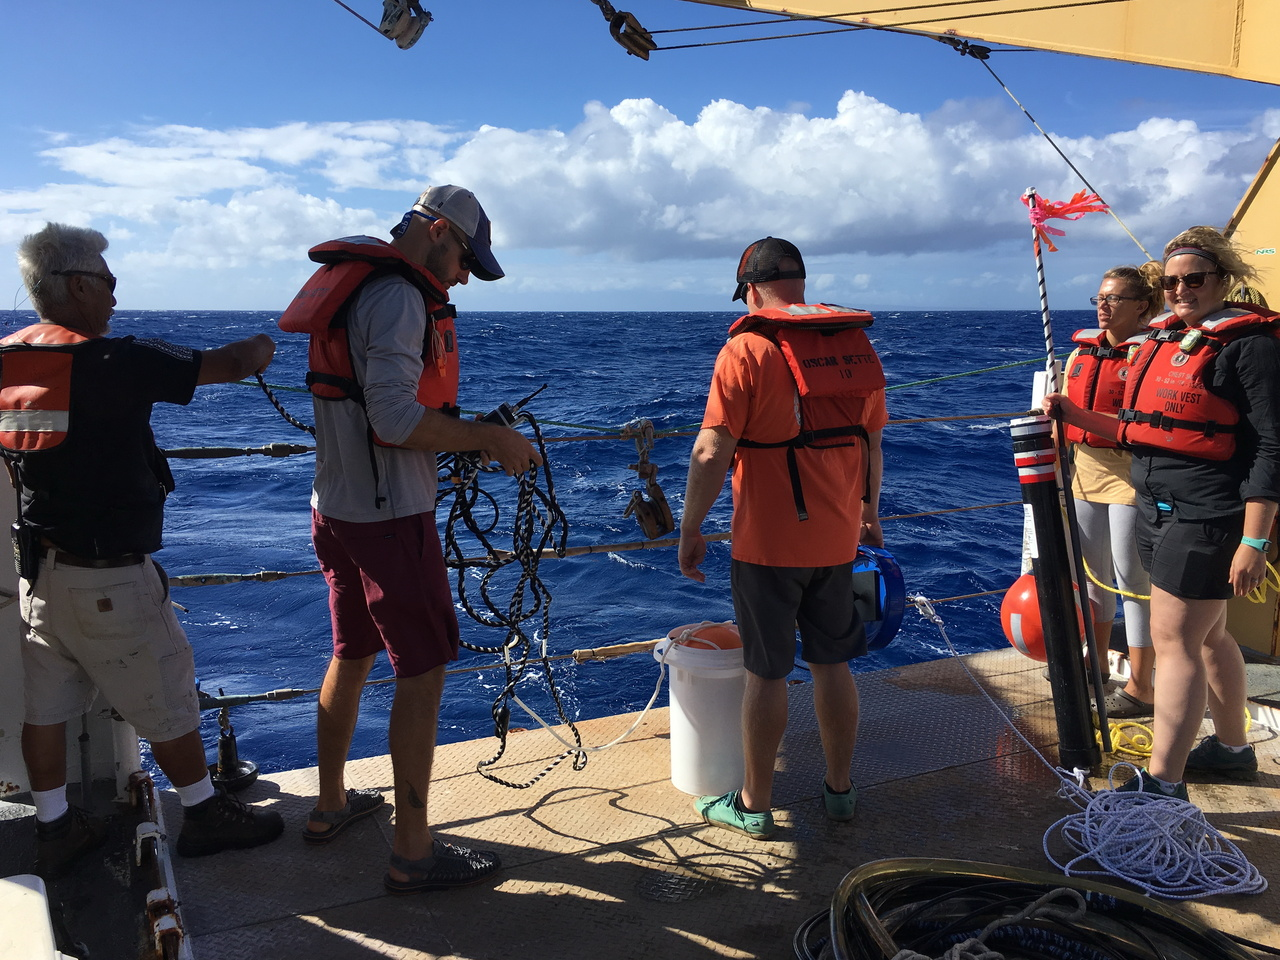 The HICEAS 2017 acoustic team releases a DASBR on the NOAA Ship Oscar Elton Sette. Photo credit: NOAA Fisheries/Amanda Bradford.